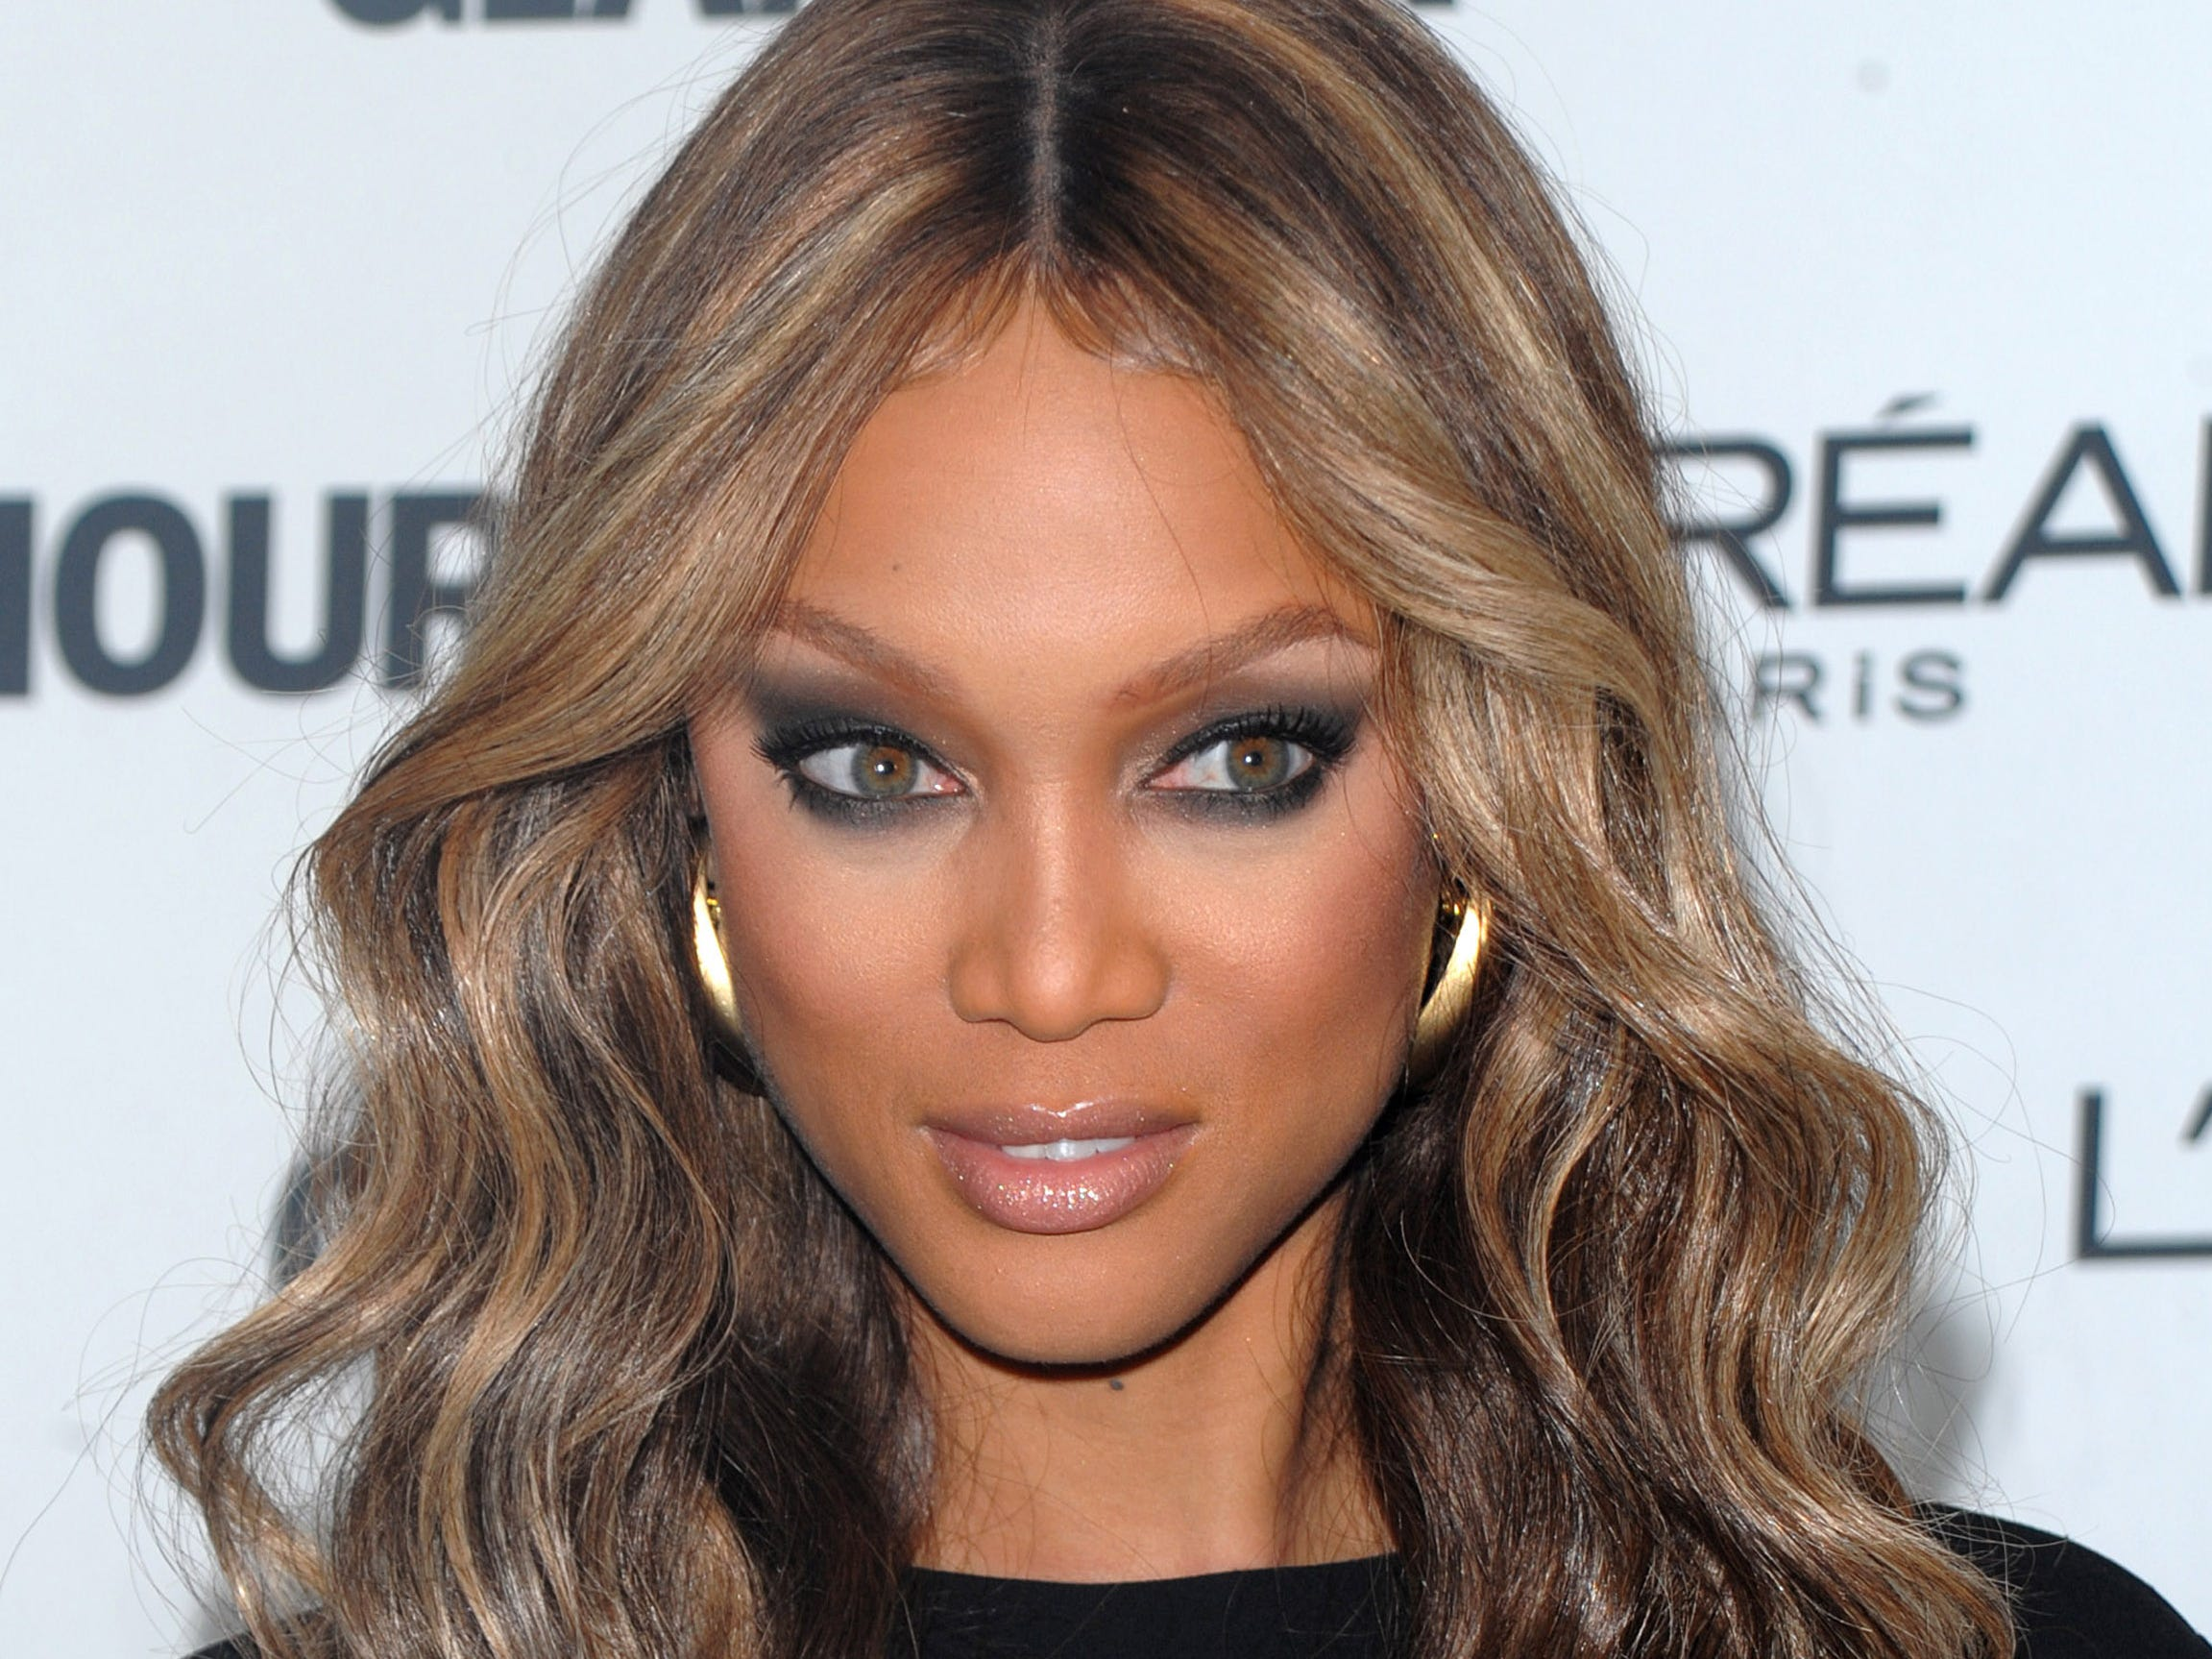 "** FILE ** In this Nov. 10, 2008 file photo, TV Personality Tyra Banks attends the 2008 Glamour Women of the Year Awards at Carnegie Hall in New York. Three people were arrested and six others hurt Saturday after bedlam broke out while they waited to audition for ""America's Next Top Model,"" police said. The model competition is hosted by Banks, who also serves as its executive producer. (AP Photo/Peter Kramer, File) ORG XMIT: NY119"